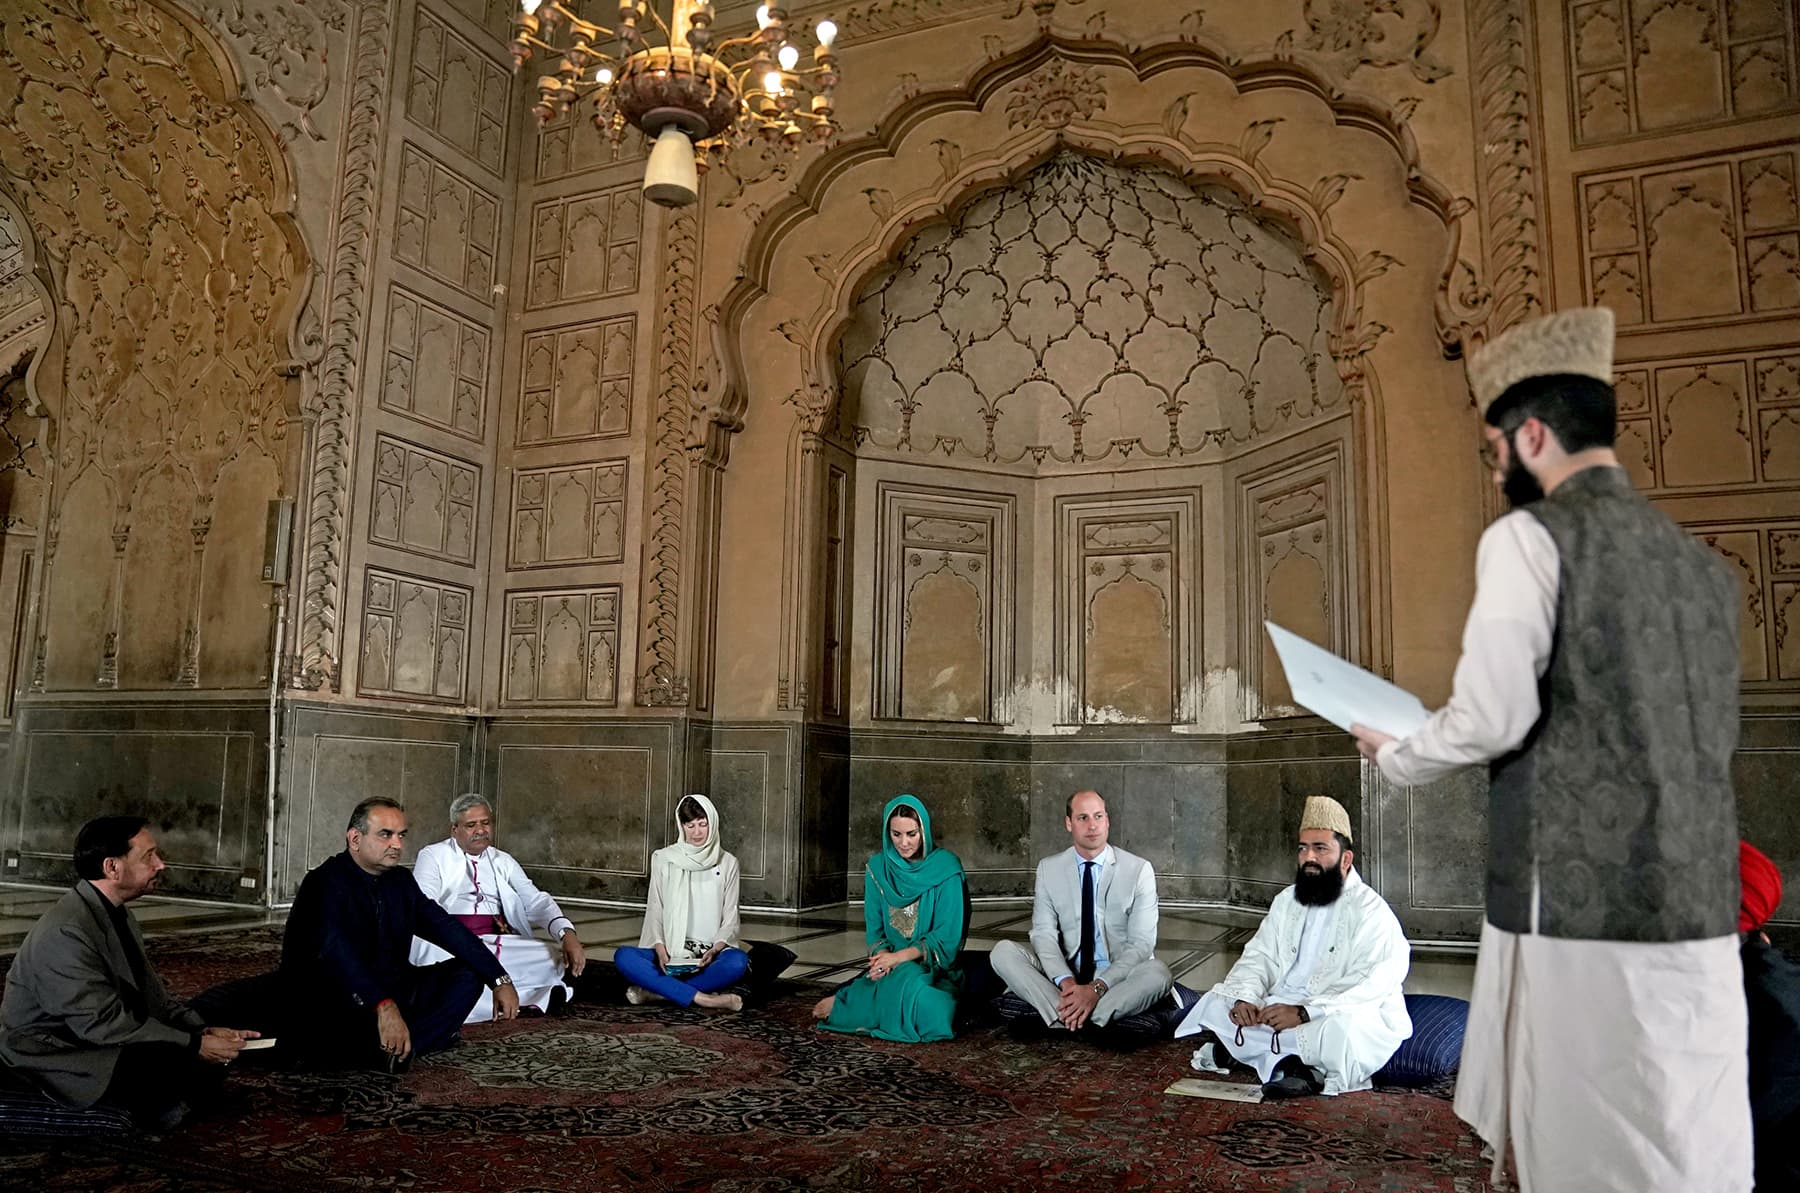 William and Catherine listen to a recitation of the Holy Quran at the Badshahi Mosque in Lahore on October 17. — Reuters